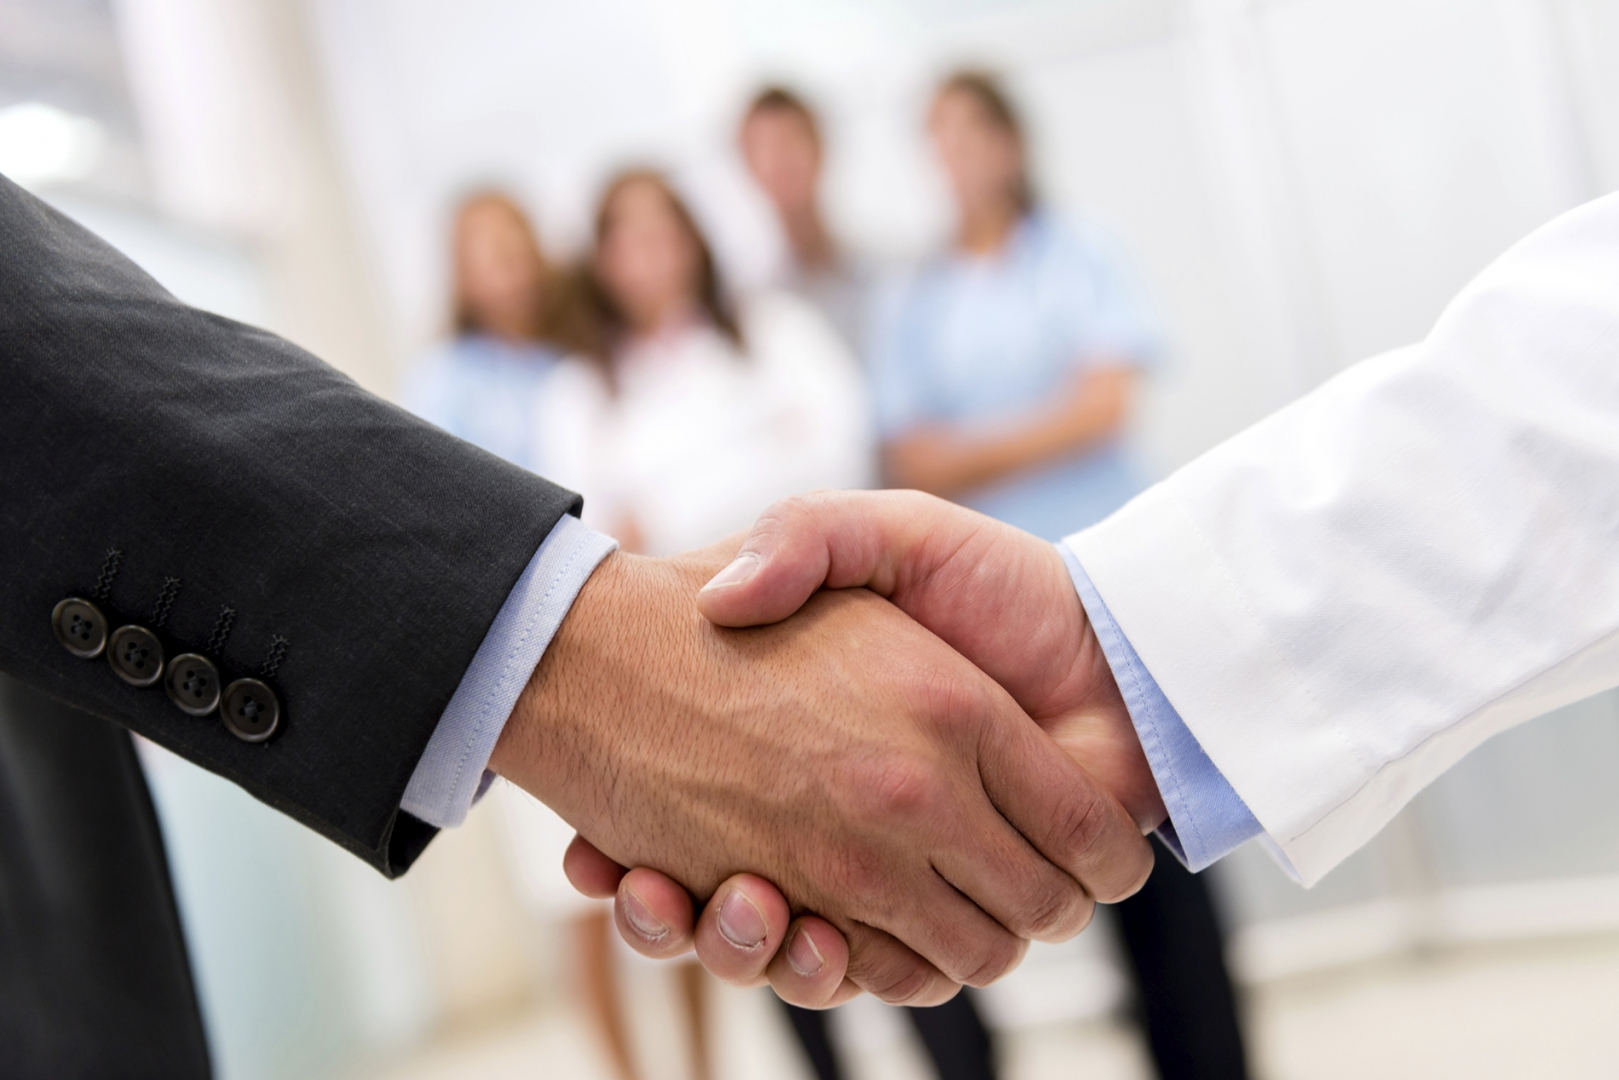 business people shaking hands with faded image of people in the background